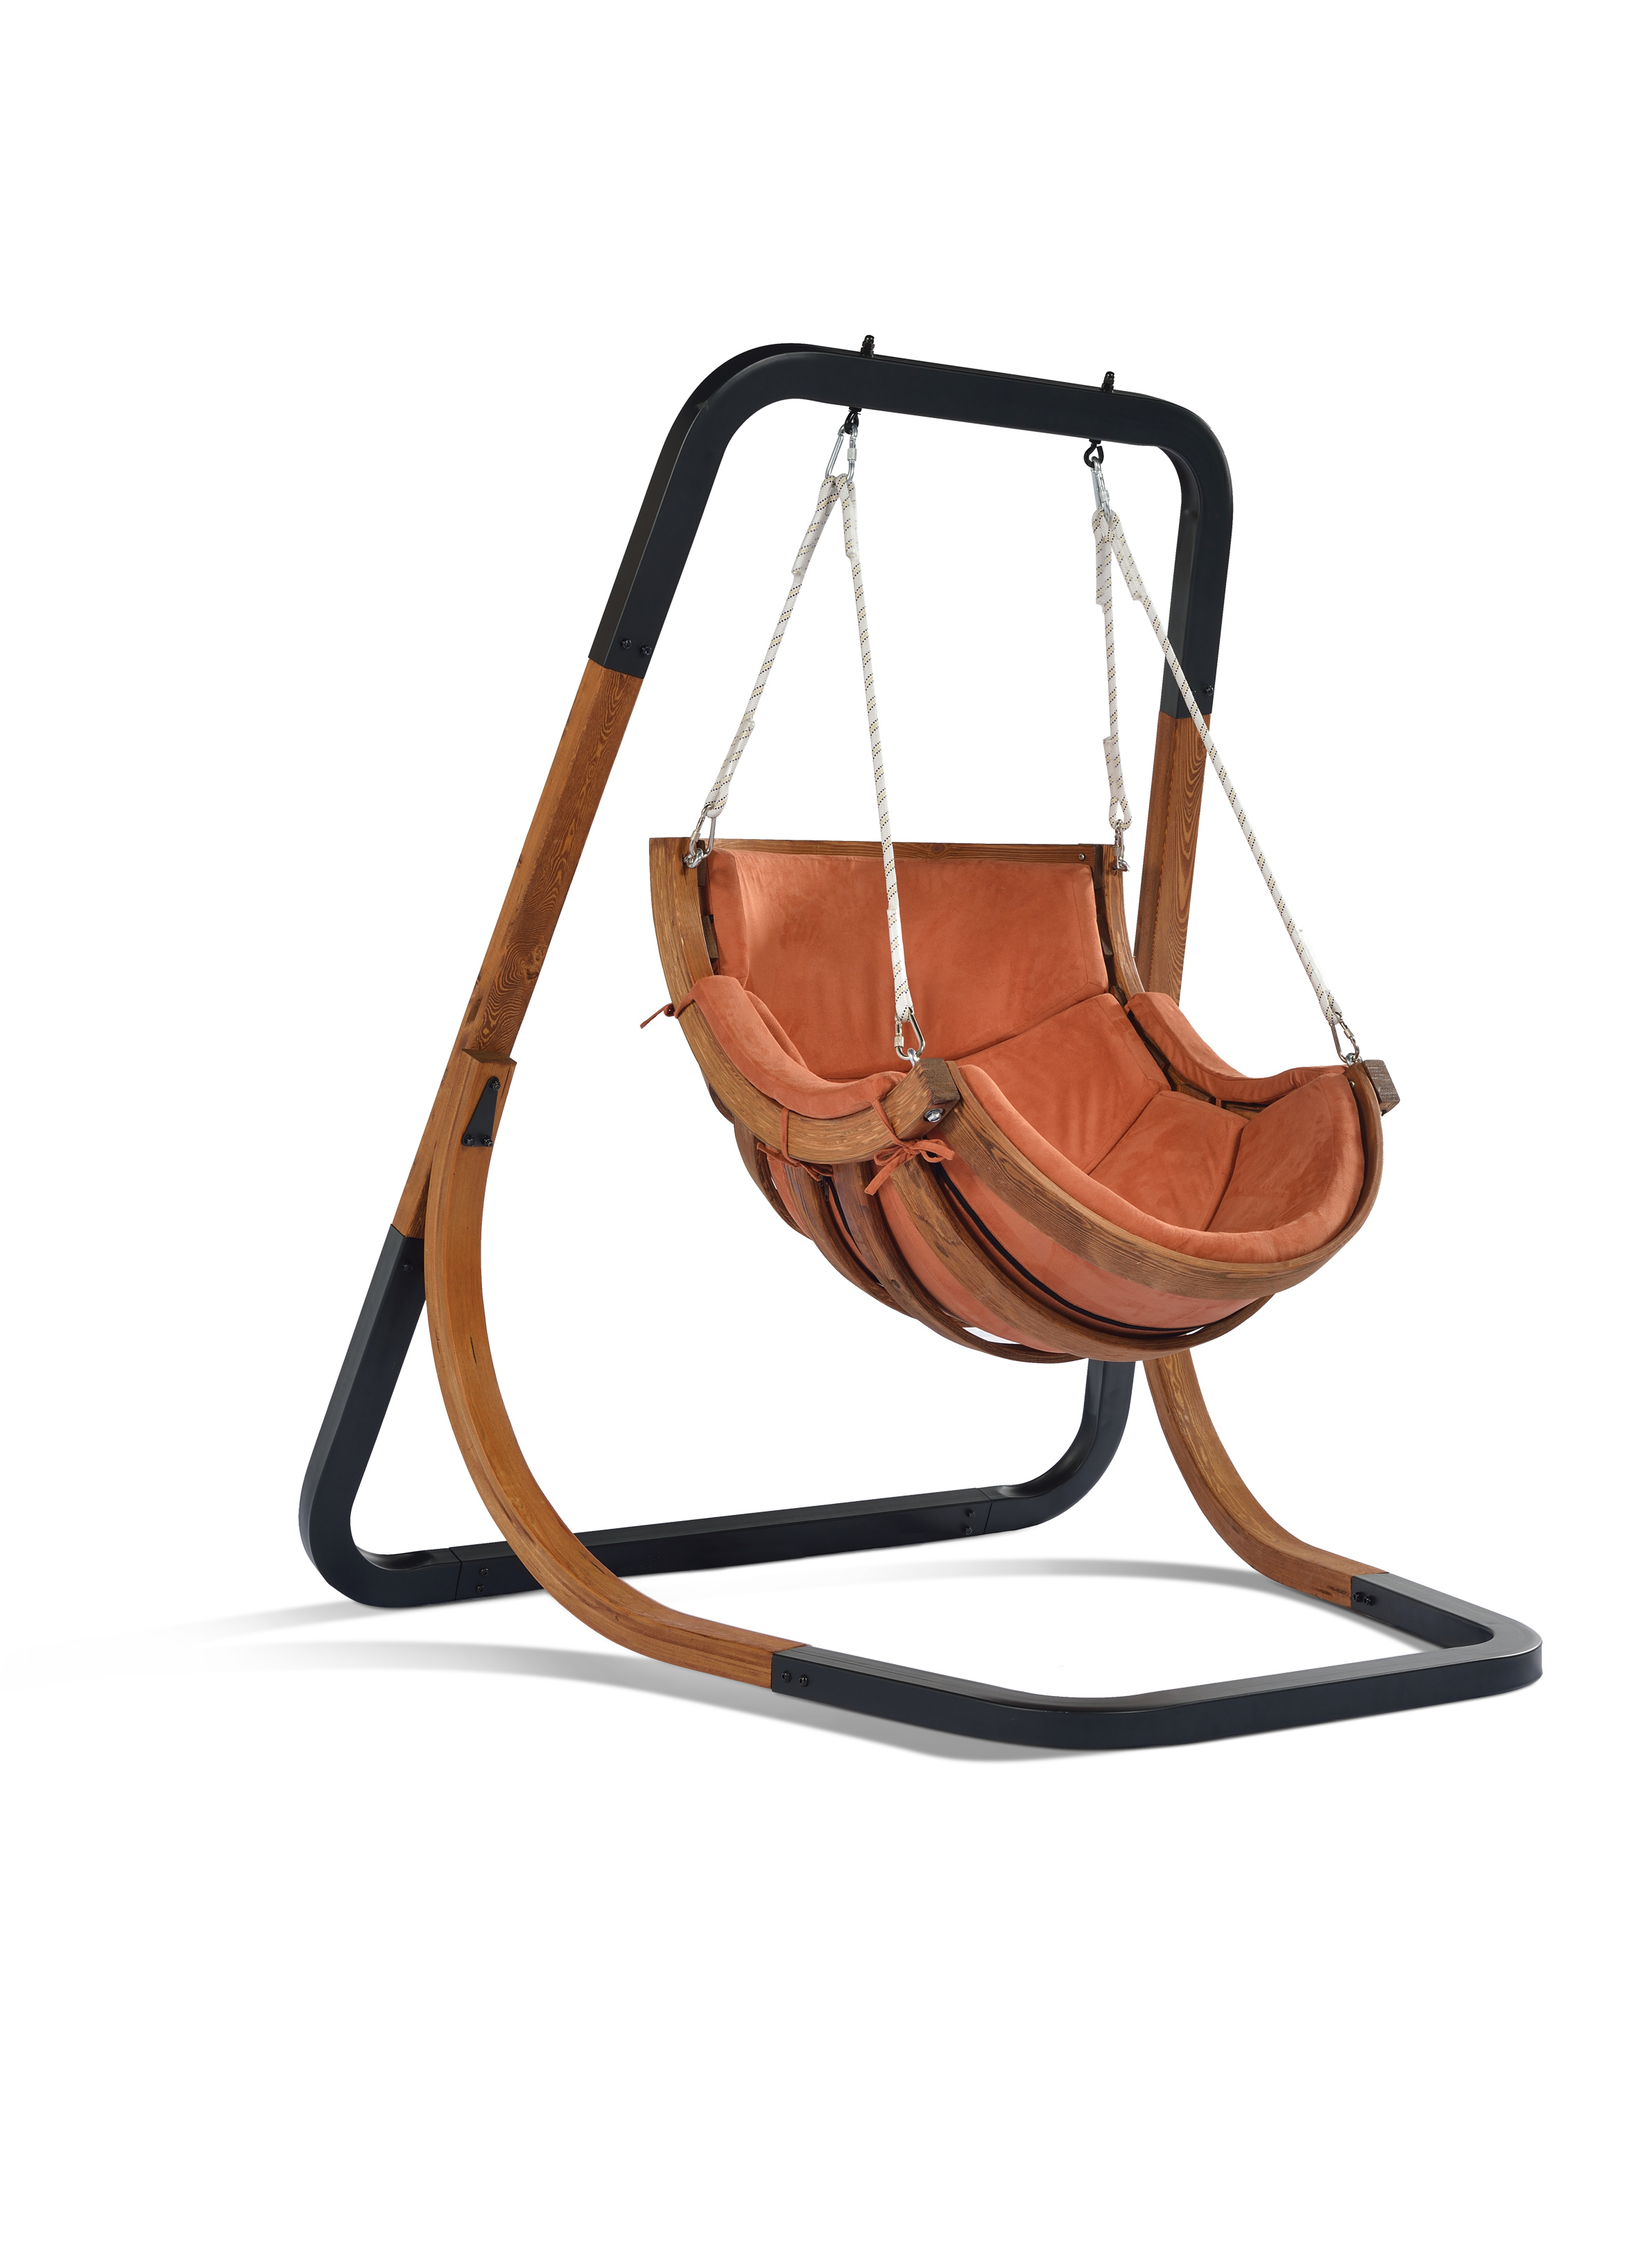 hanging chair lahore chairs for waiting rooms catalogue im hardware wooden swing